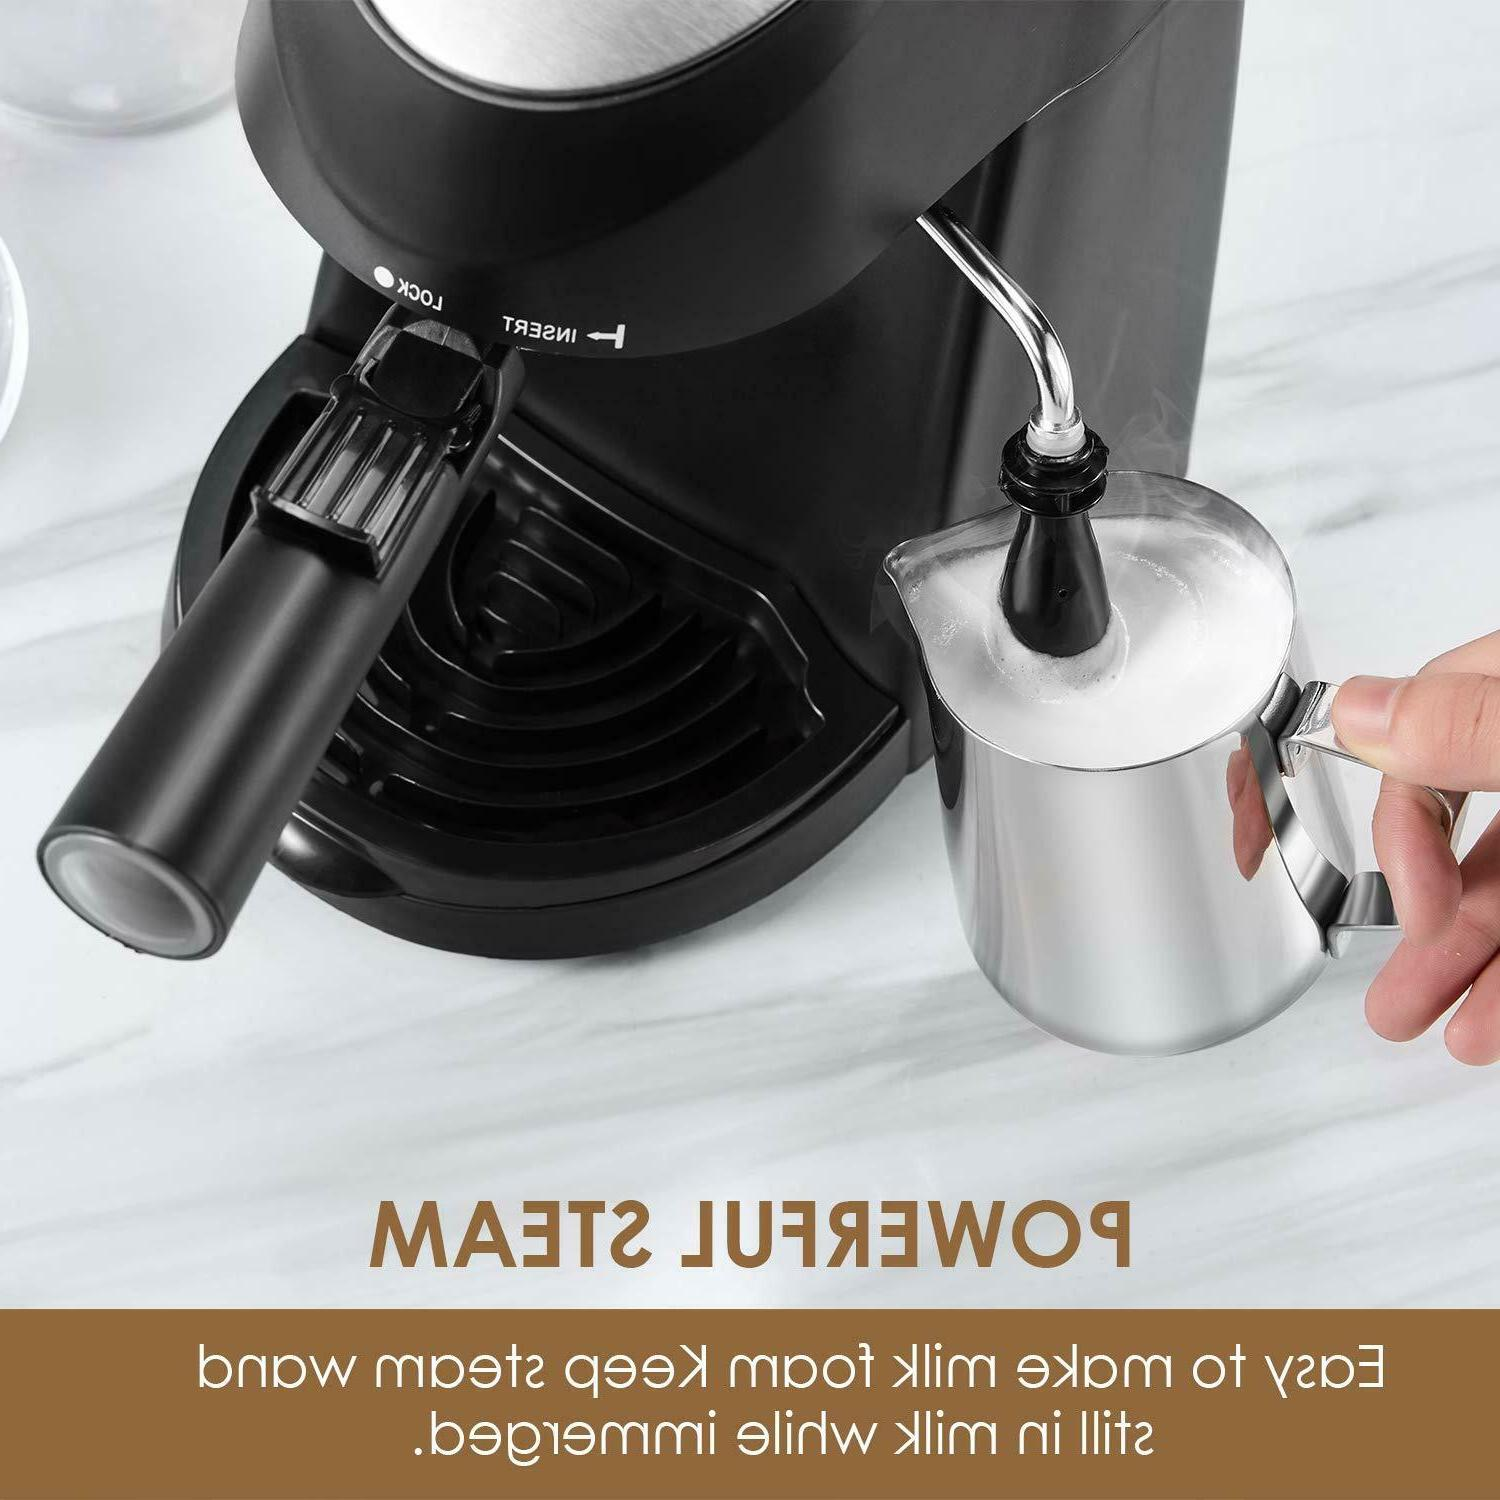 Home Espresso Expresso Coffee Steam Frothing NEW